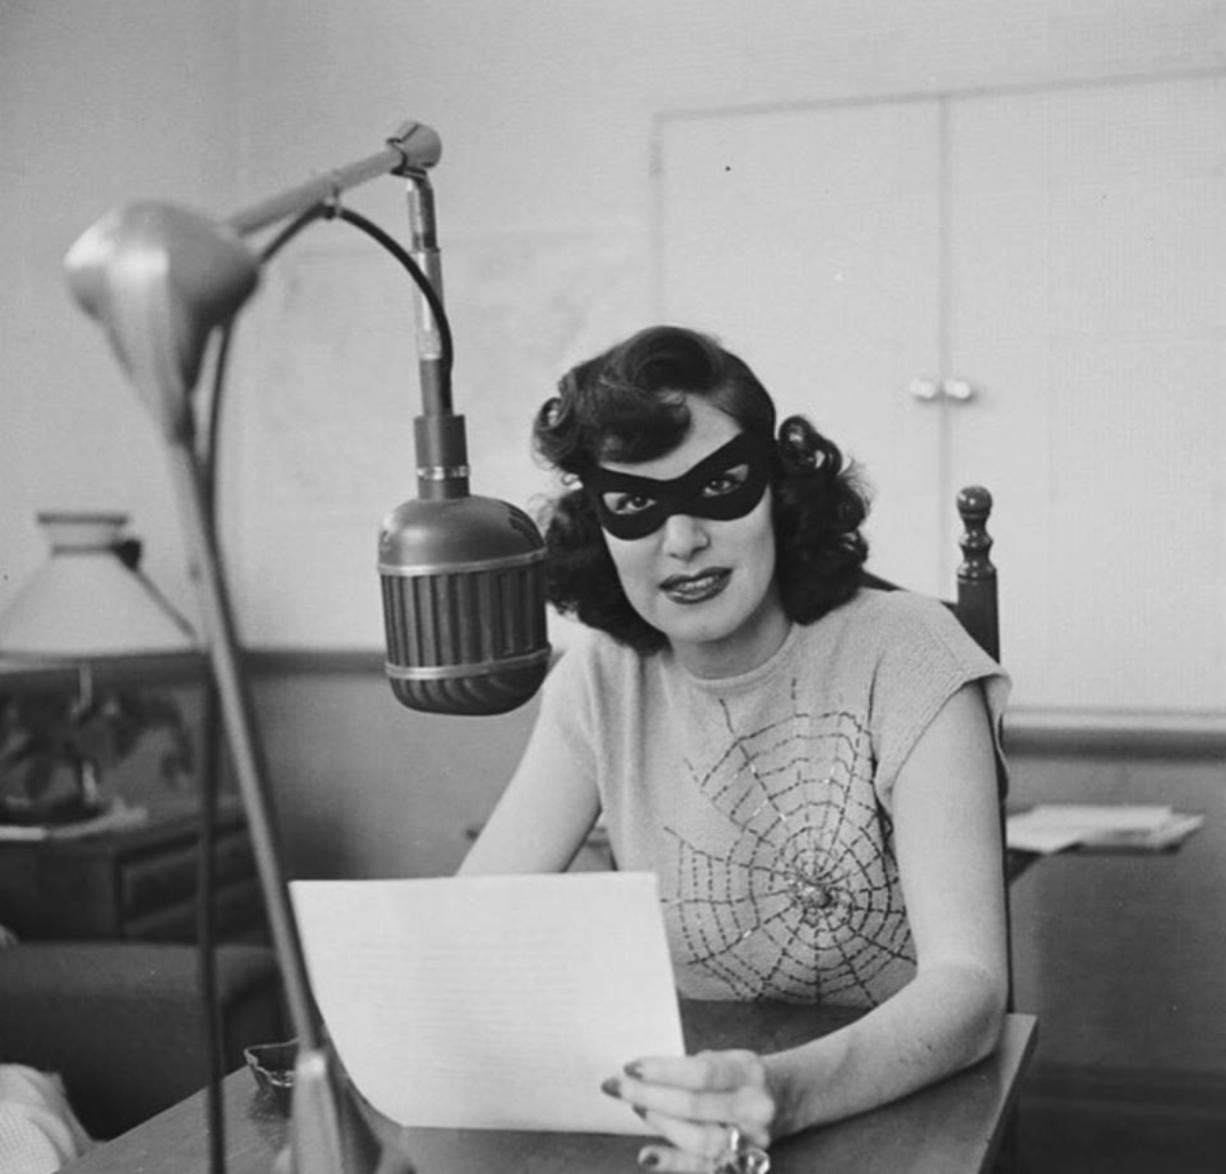 """Hiiiii, baaaybeee,"" the radio broadcaster called Lonesome Gal used to whisper suggestively to you and you alone — you being millions of men captivated by their very first ""virtual"" girlfriend. When Lonesome Gal made personal appearances, she'd wear a cat mask to hide her real identity — which was Jean King, an Ohio broadcaster."